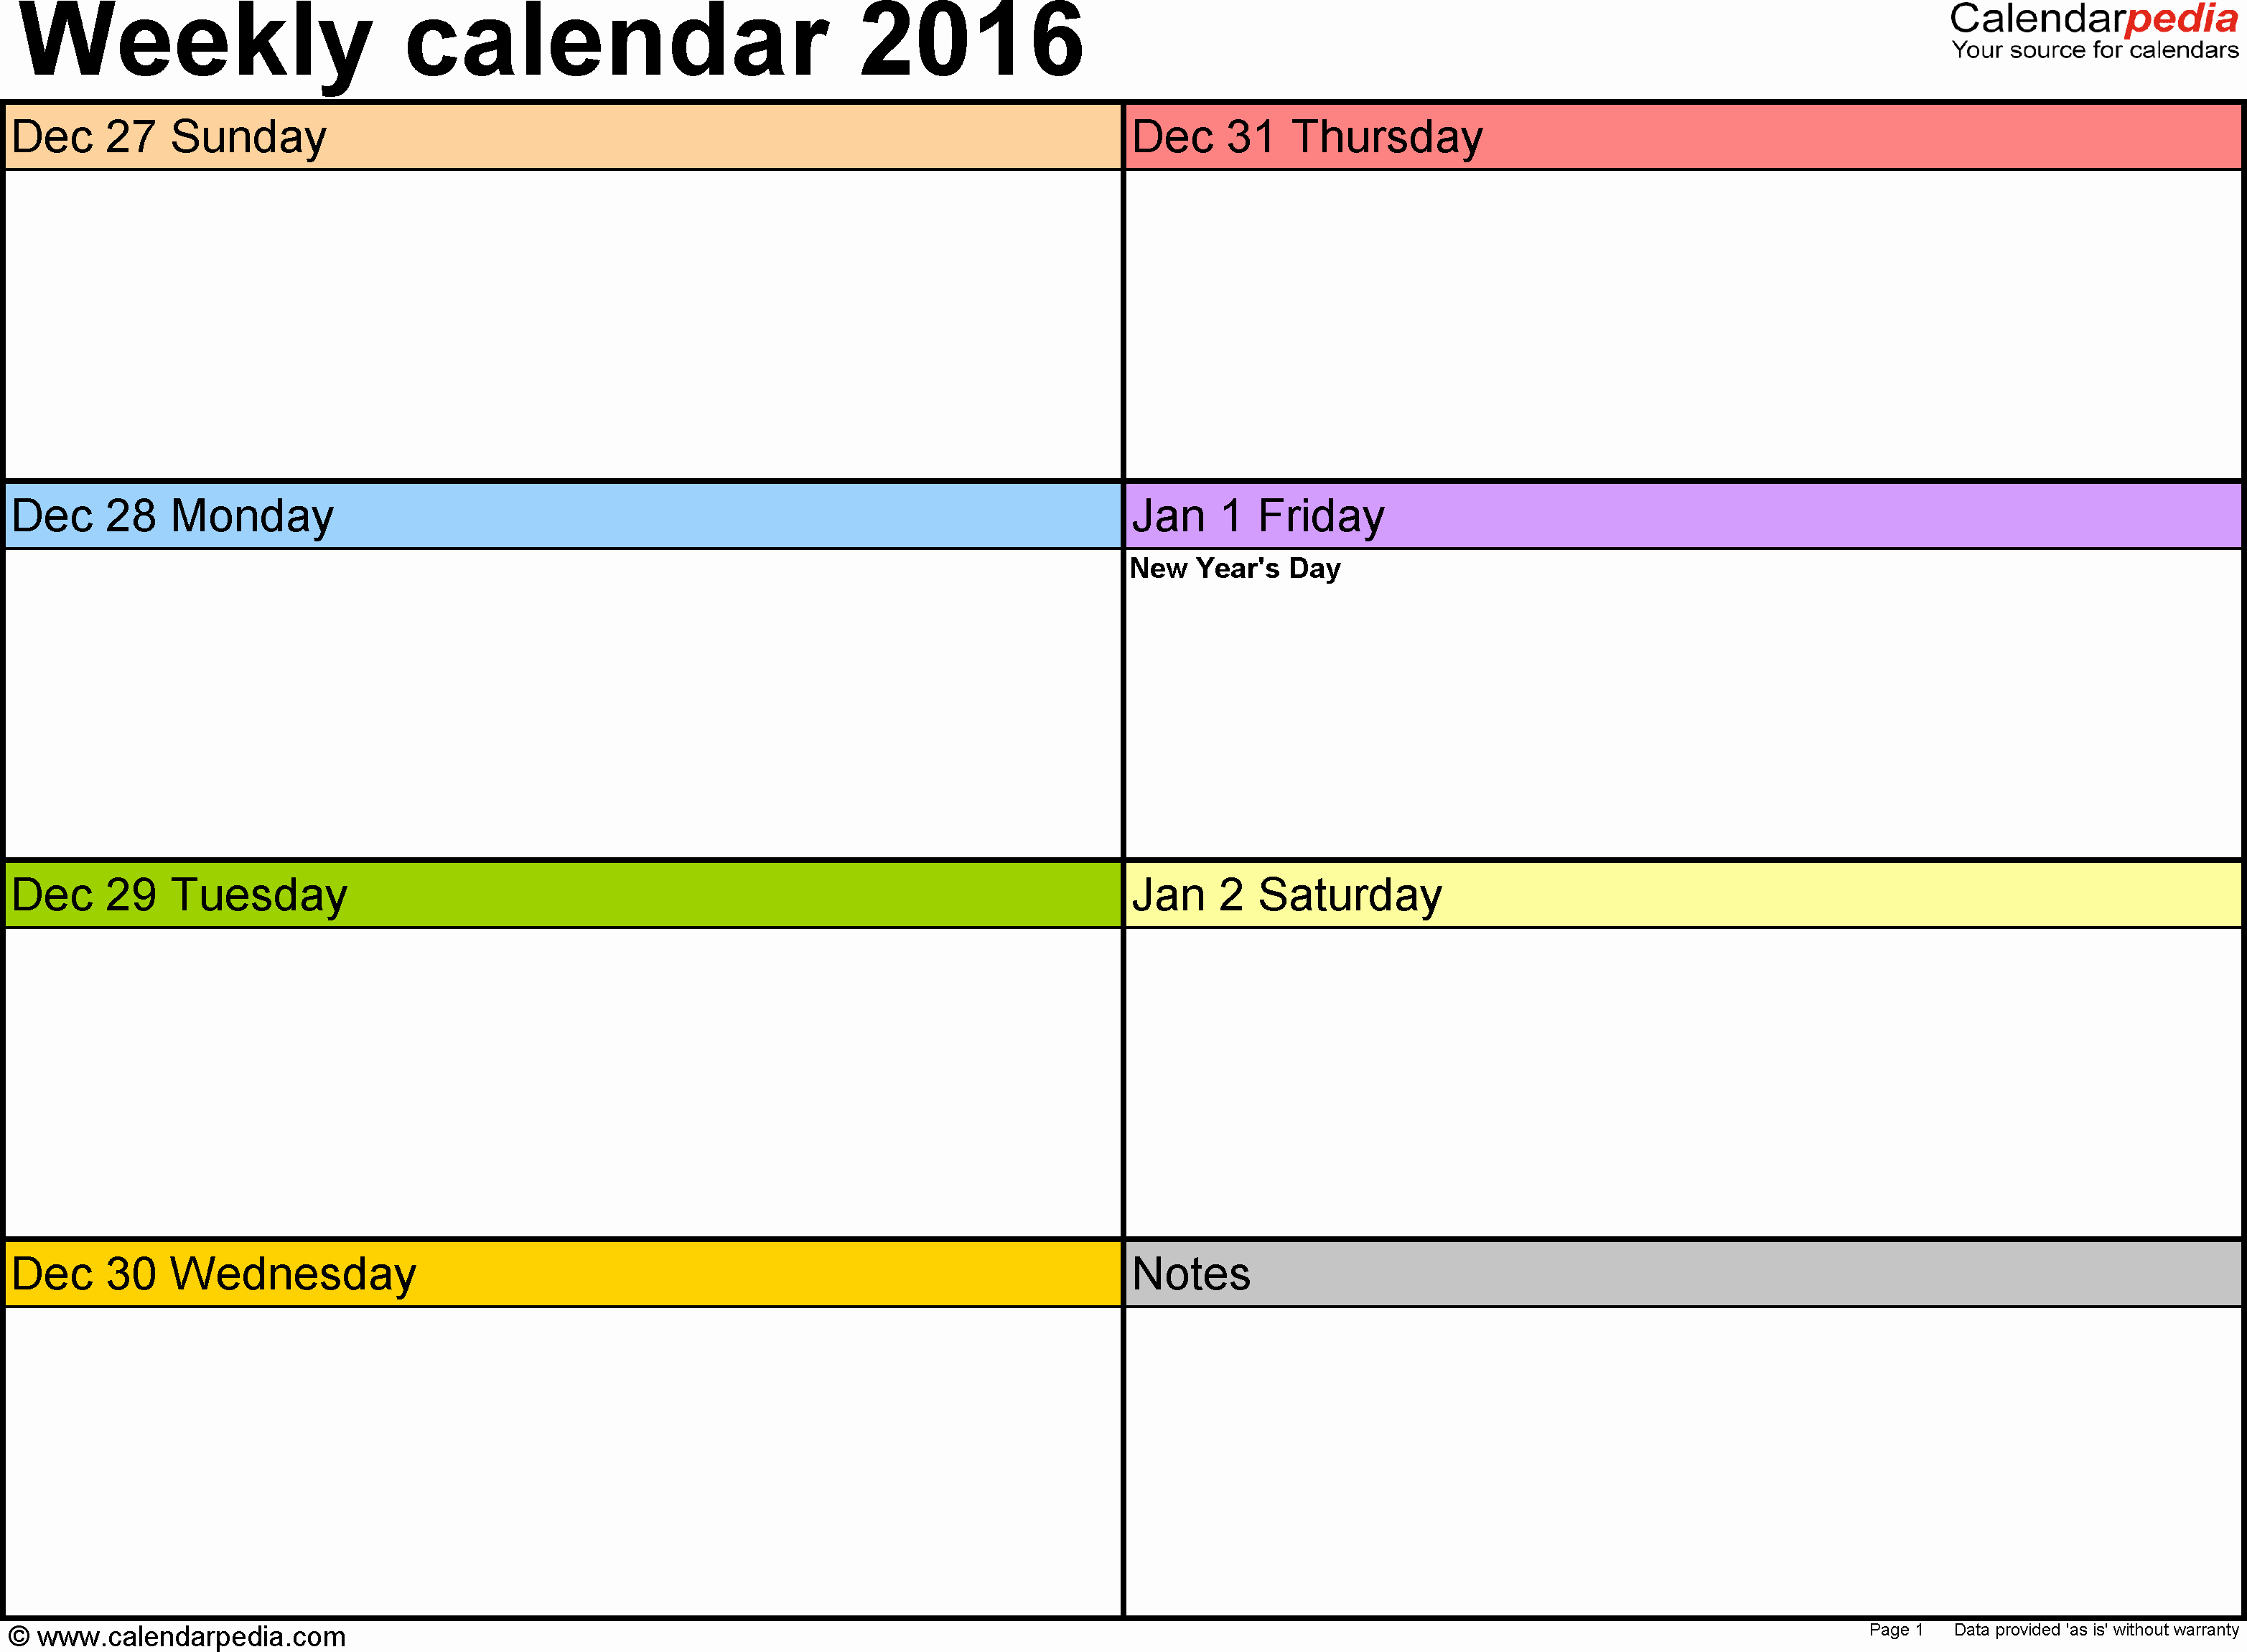 Weekly Schedule Template Pdf Awesome Weekly Calendar 2016 for Pdf 12 Free Printable Templates